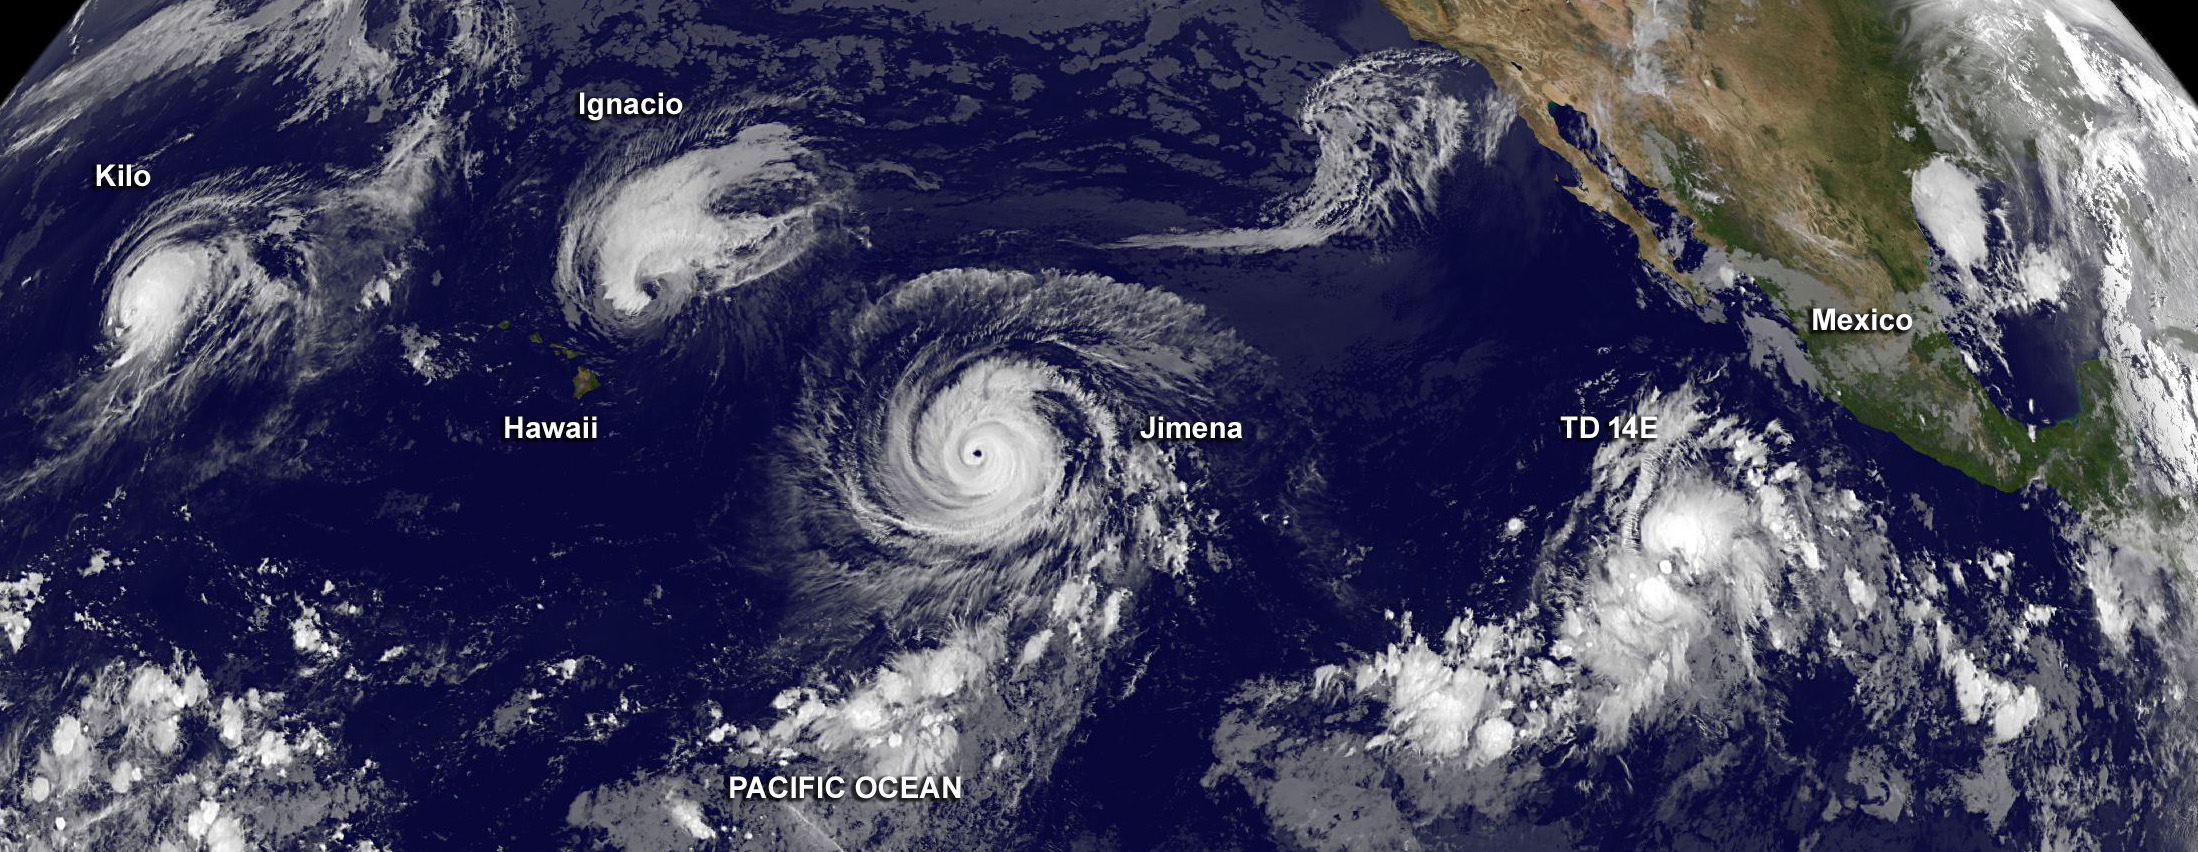 September 2015: The unprecedented formation of three simultaneous category 4 Hurricanes in the Pacific, and another in the Atlantic, marked the peak of the second most intense Pacific hurricane season on record. Image from NASA.